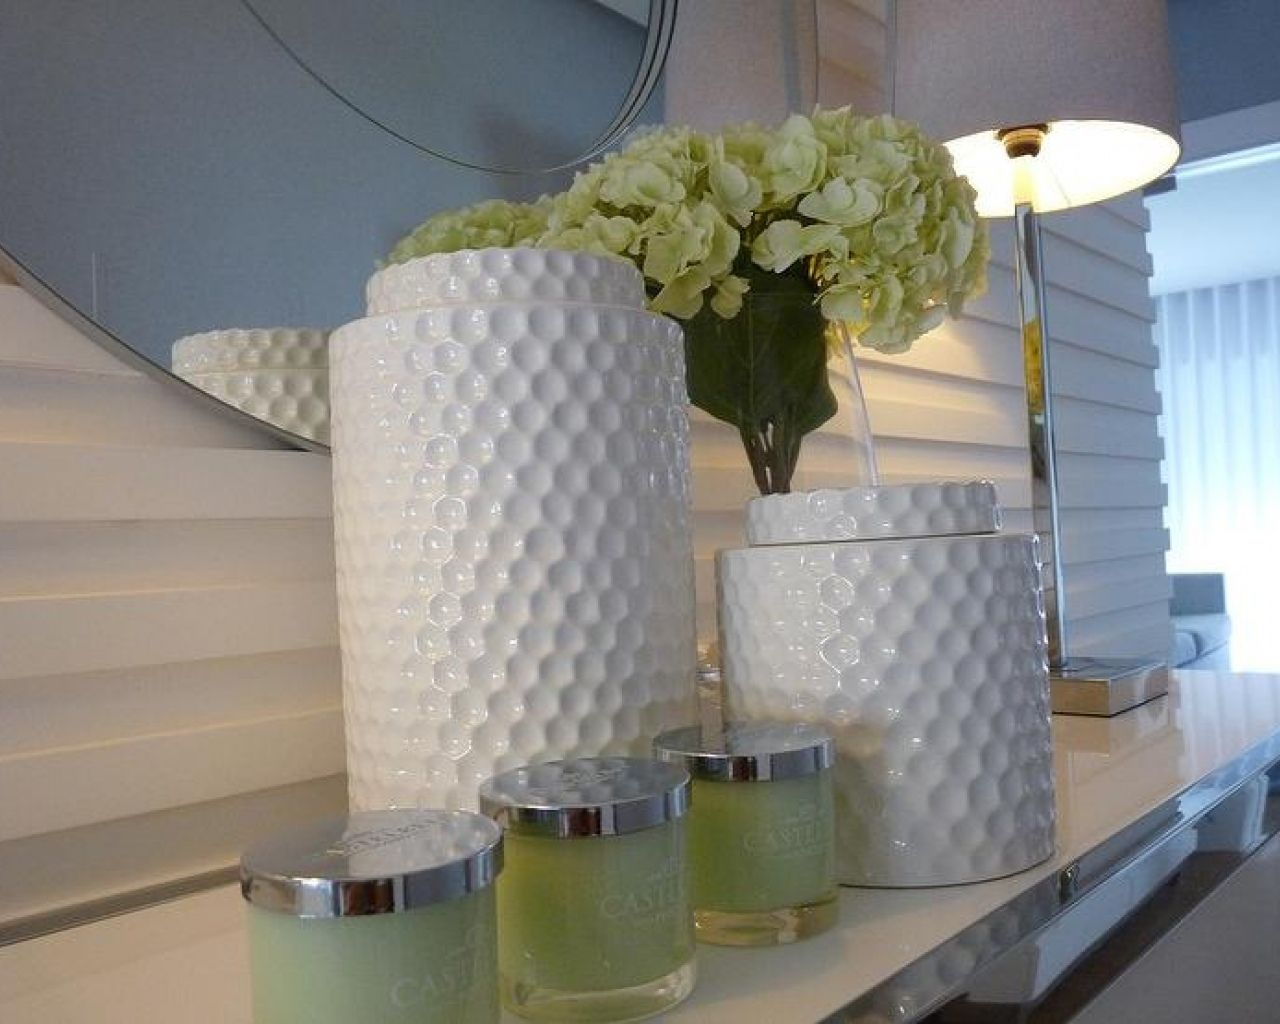 lovely textures - wall, mirror, metal table edge and lamp plant and jars.  Great job.